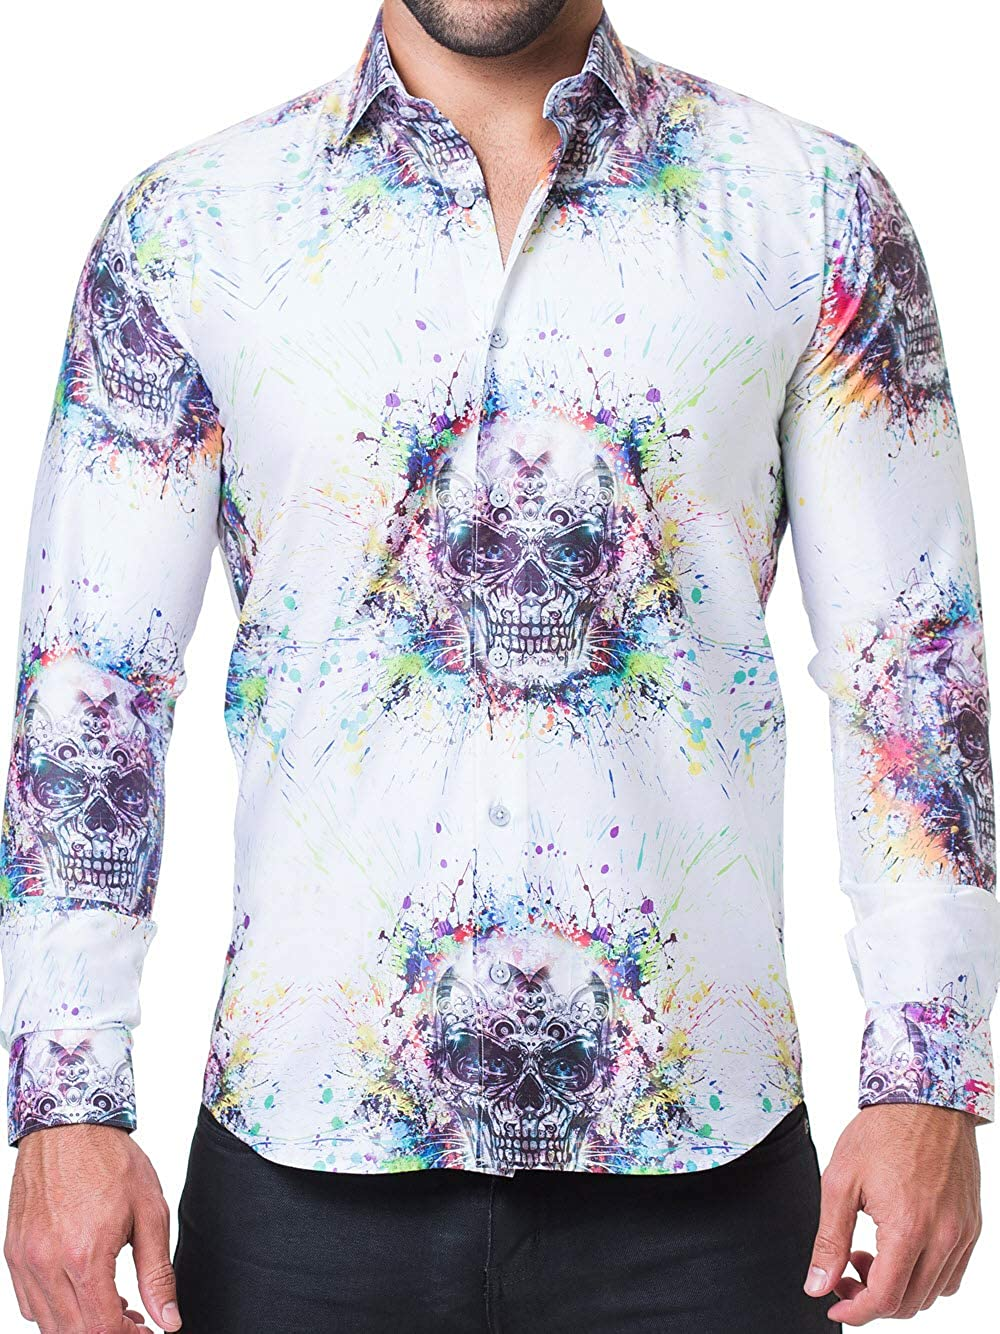 Maceoo Mens Designer Dress Shirt Stylish Trendy Fibonacci